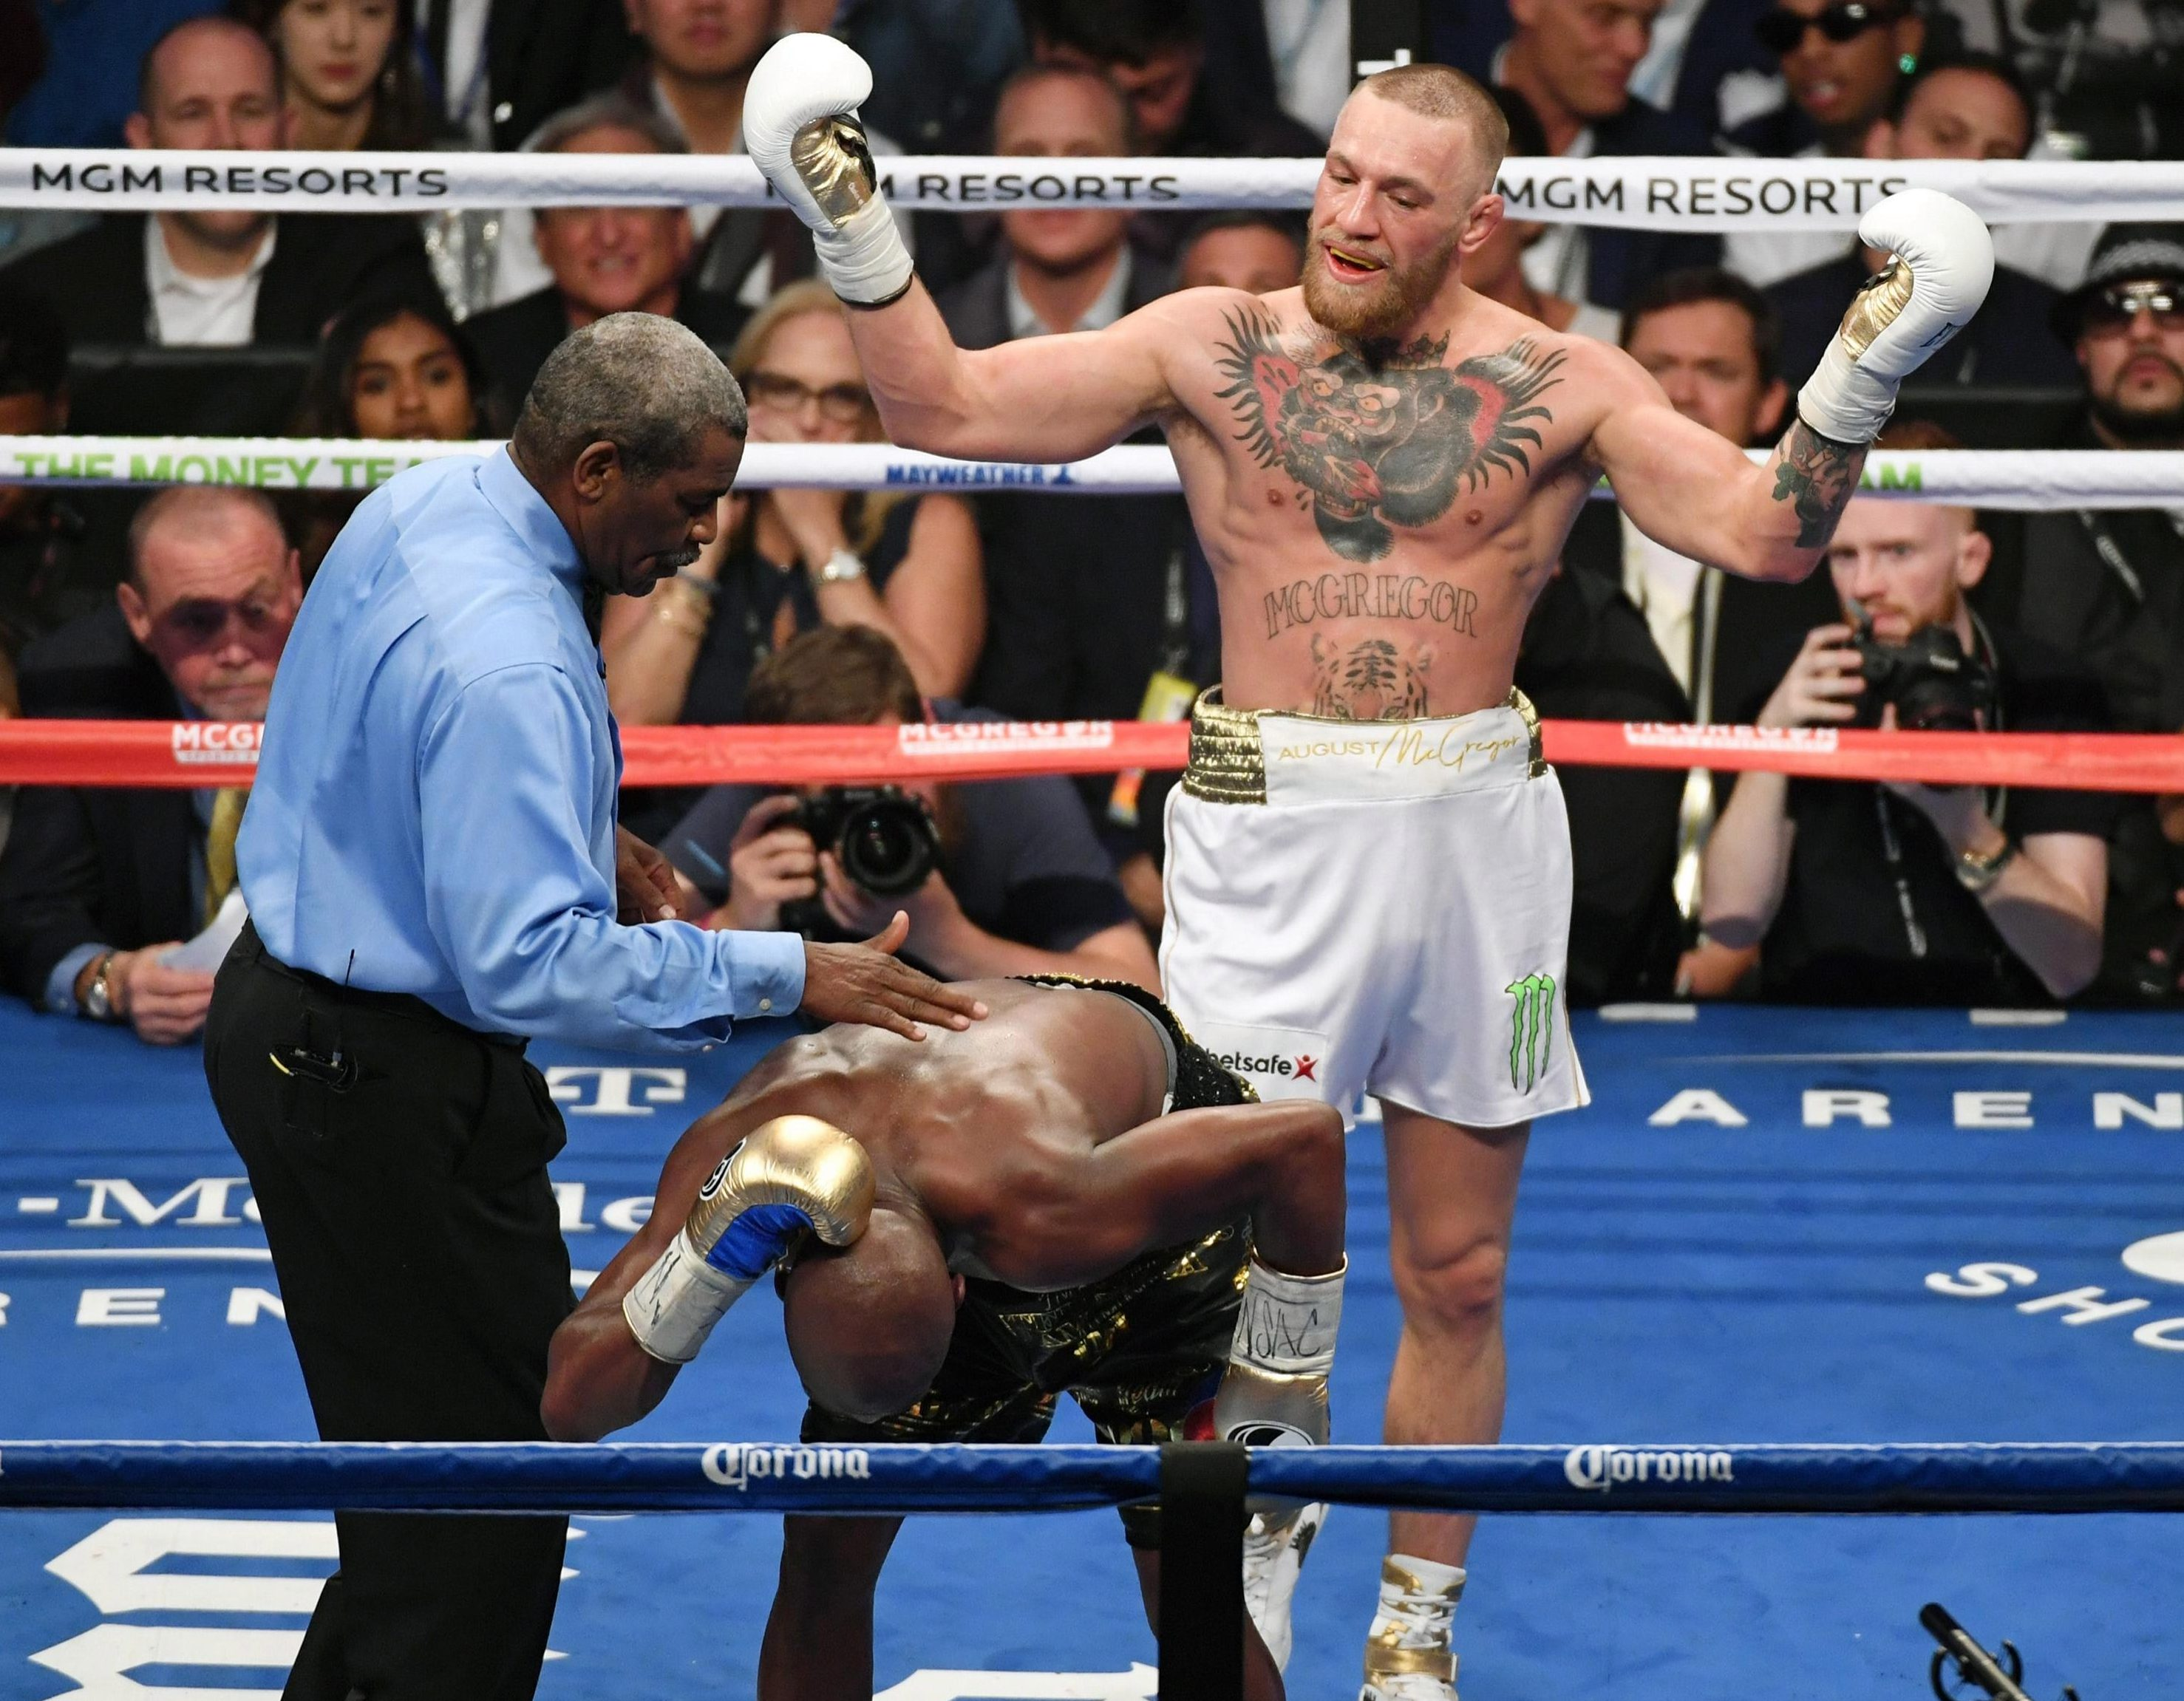 Conor McGregor sparked a war of words with old foe Floyd Mayweather after being invited to train in his gym